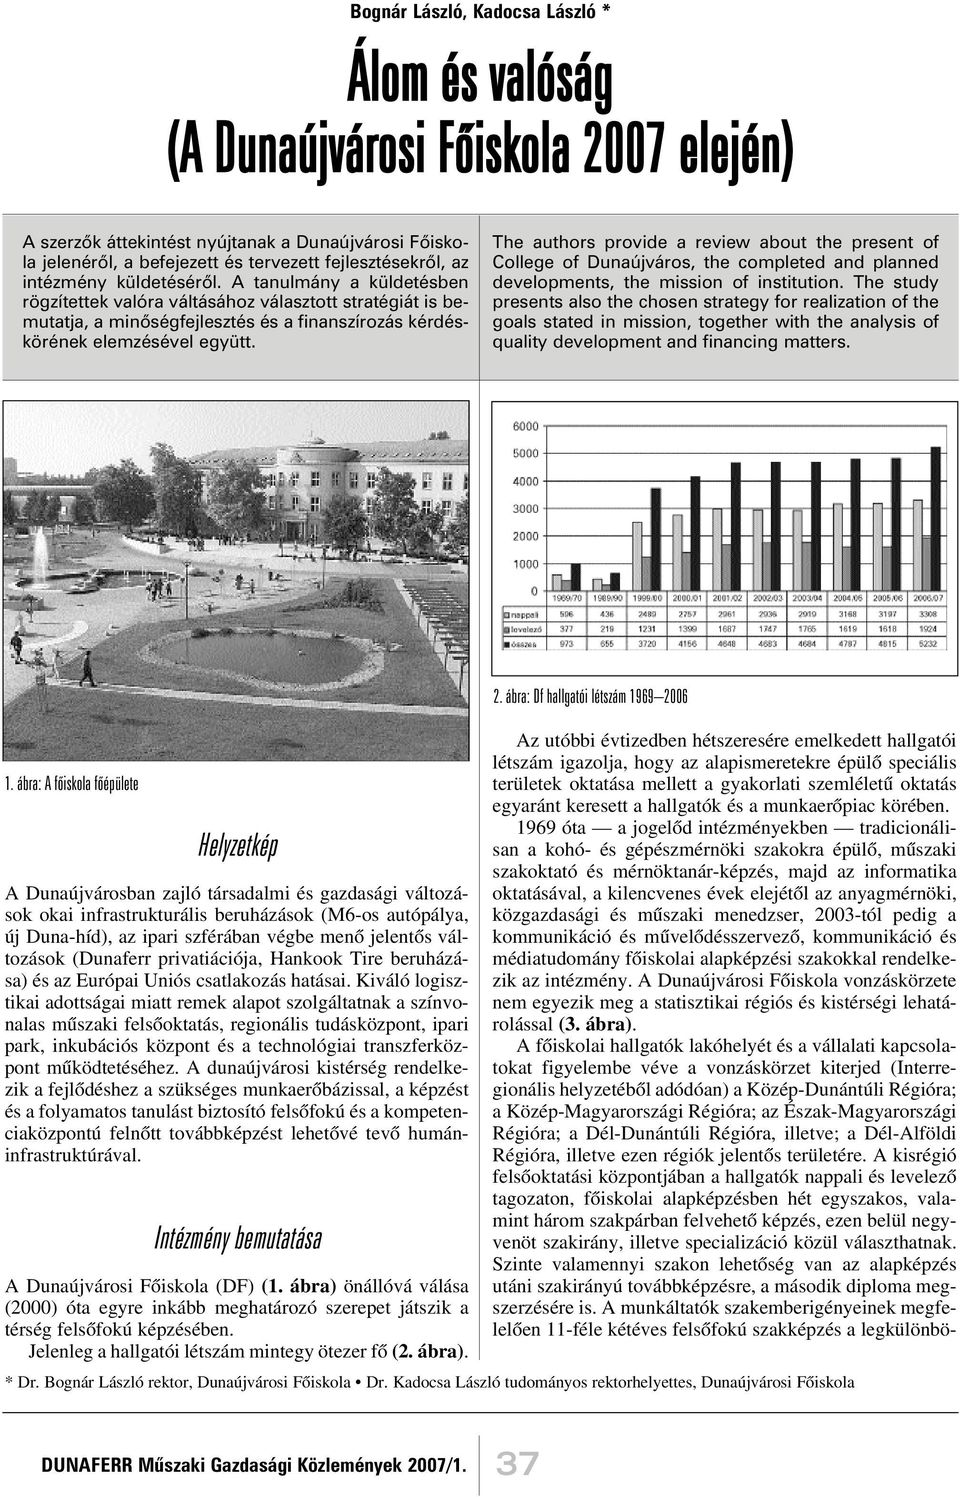 The authors provide a review about the present of College of Dunaújváros, the completed and planned developments, the mission of institution.